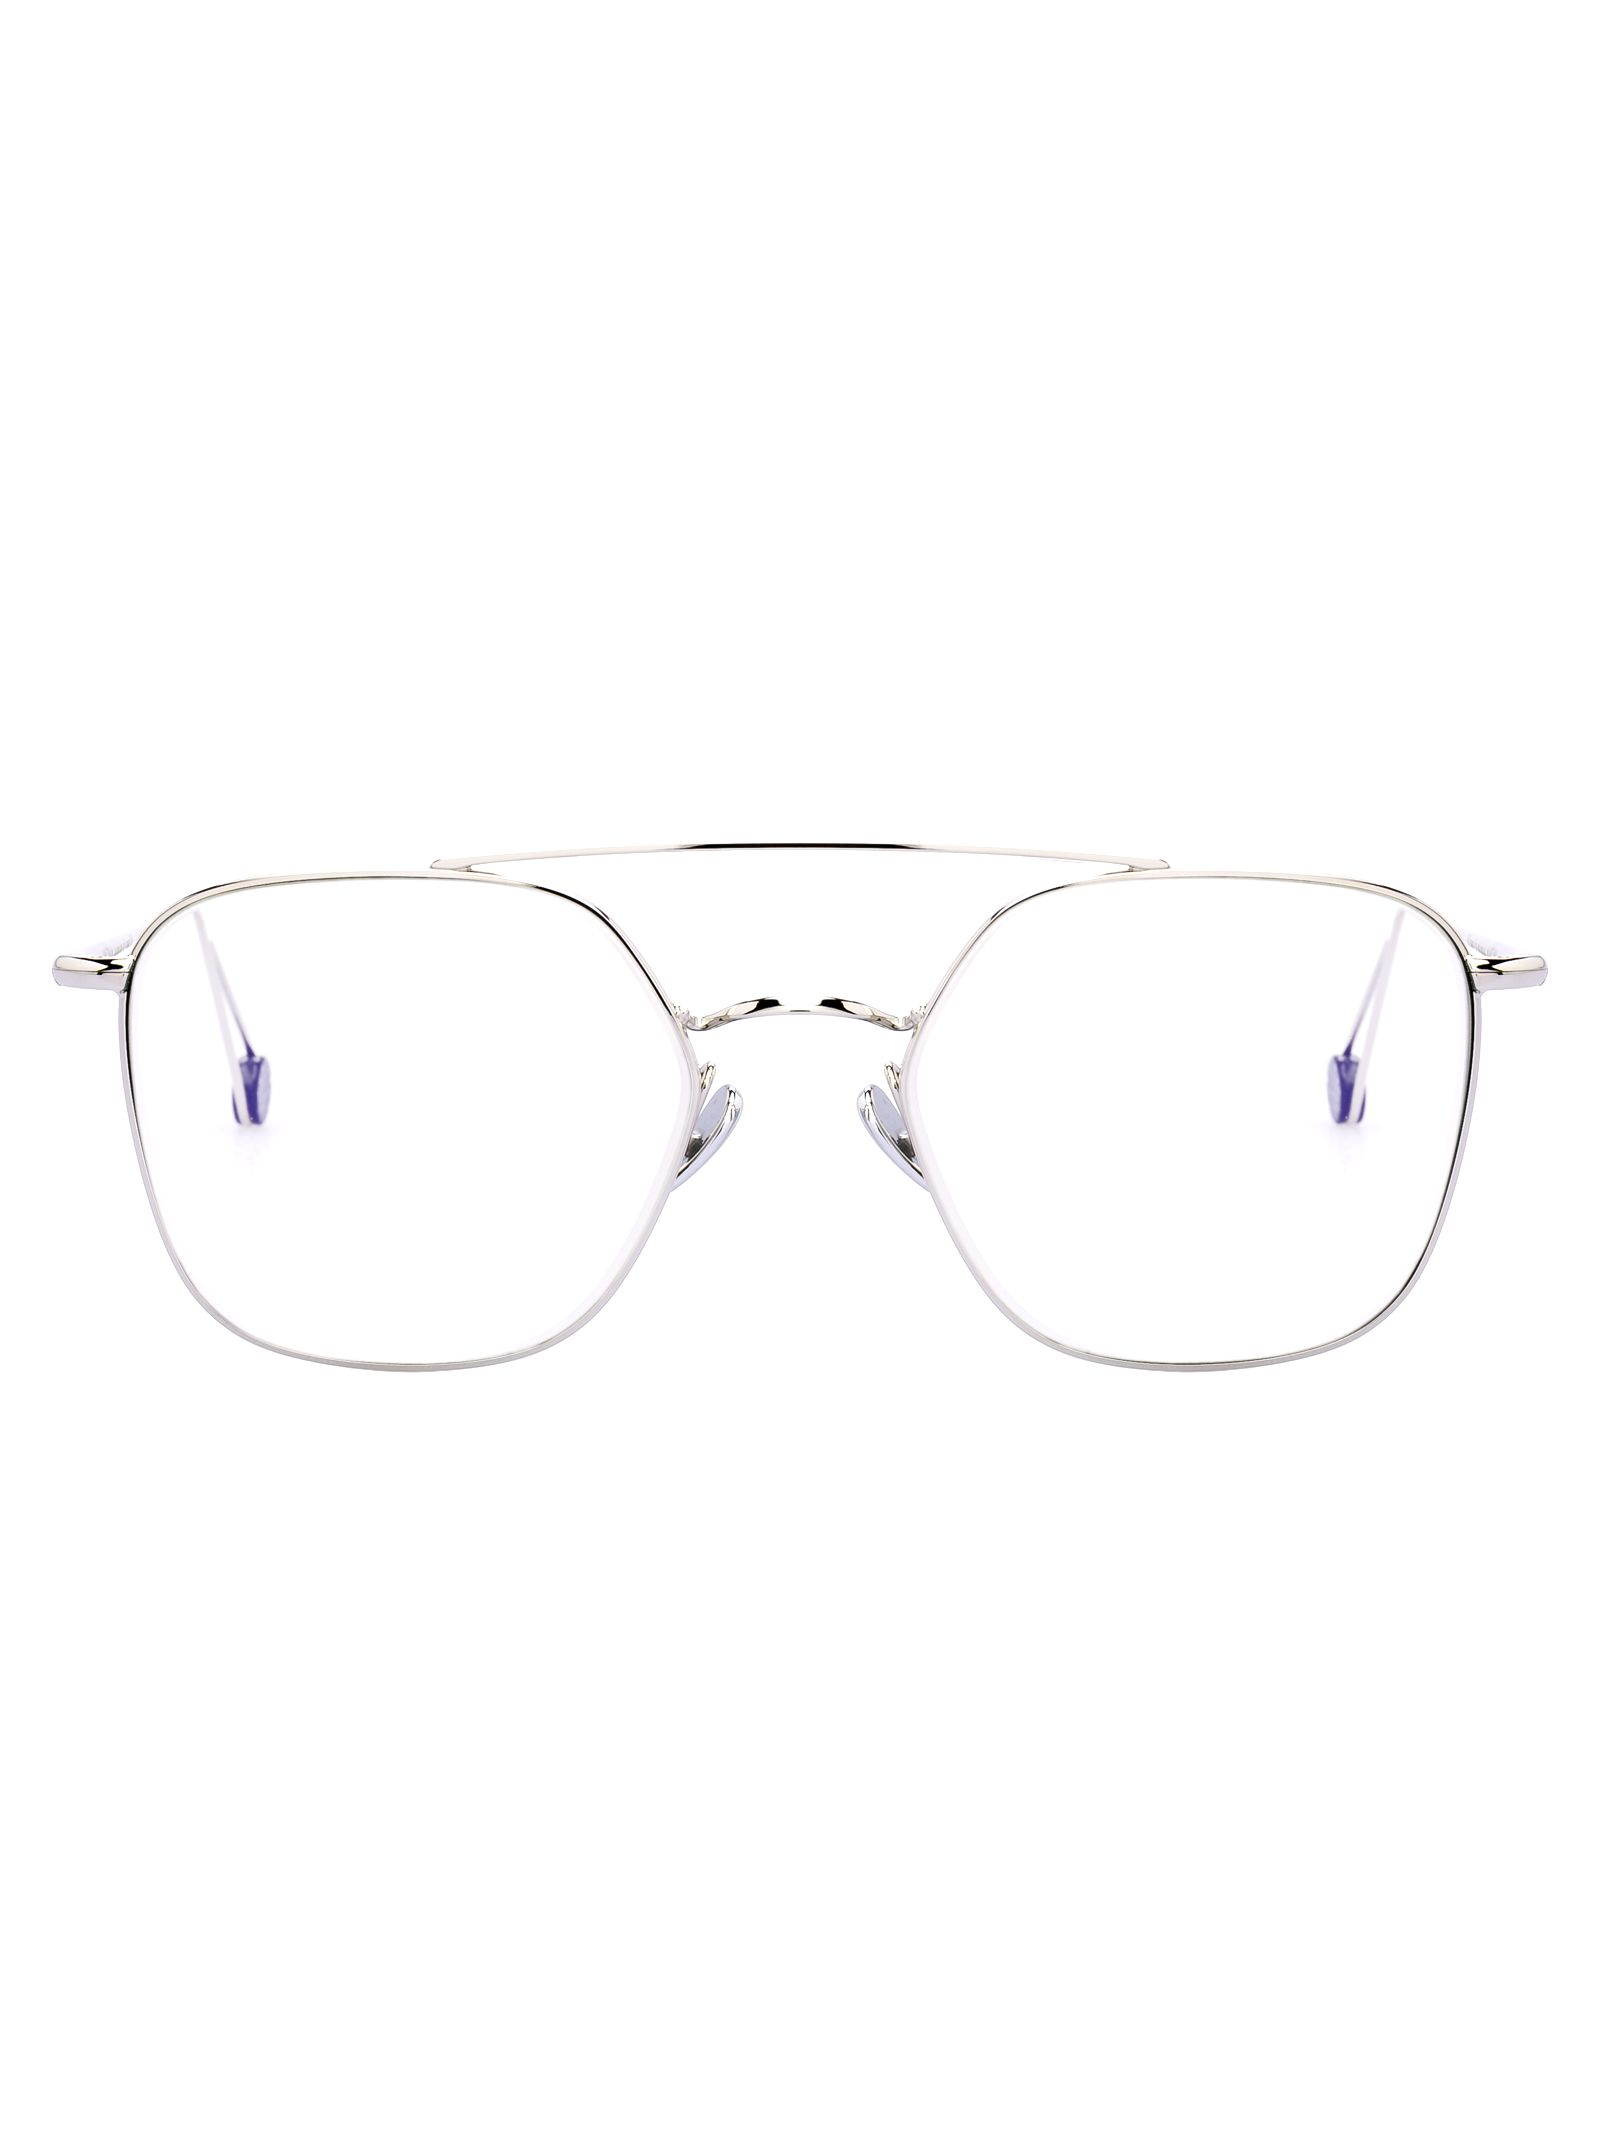 Ahlem Concorde Glasses in White Gold